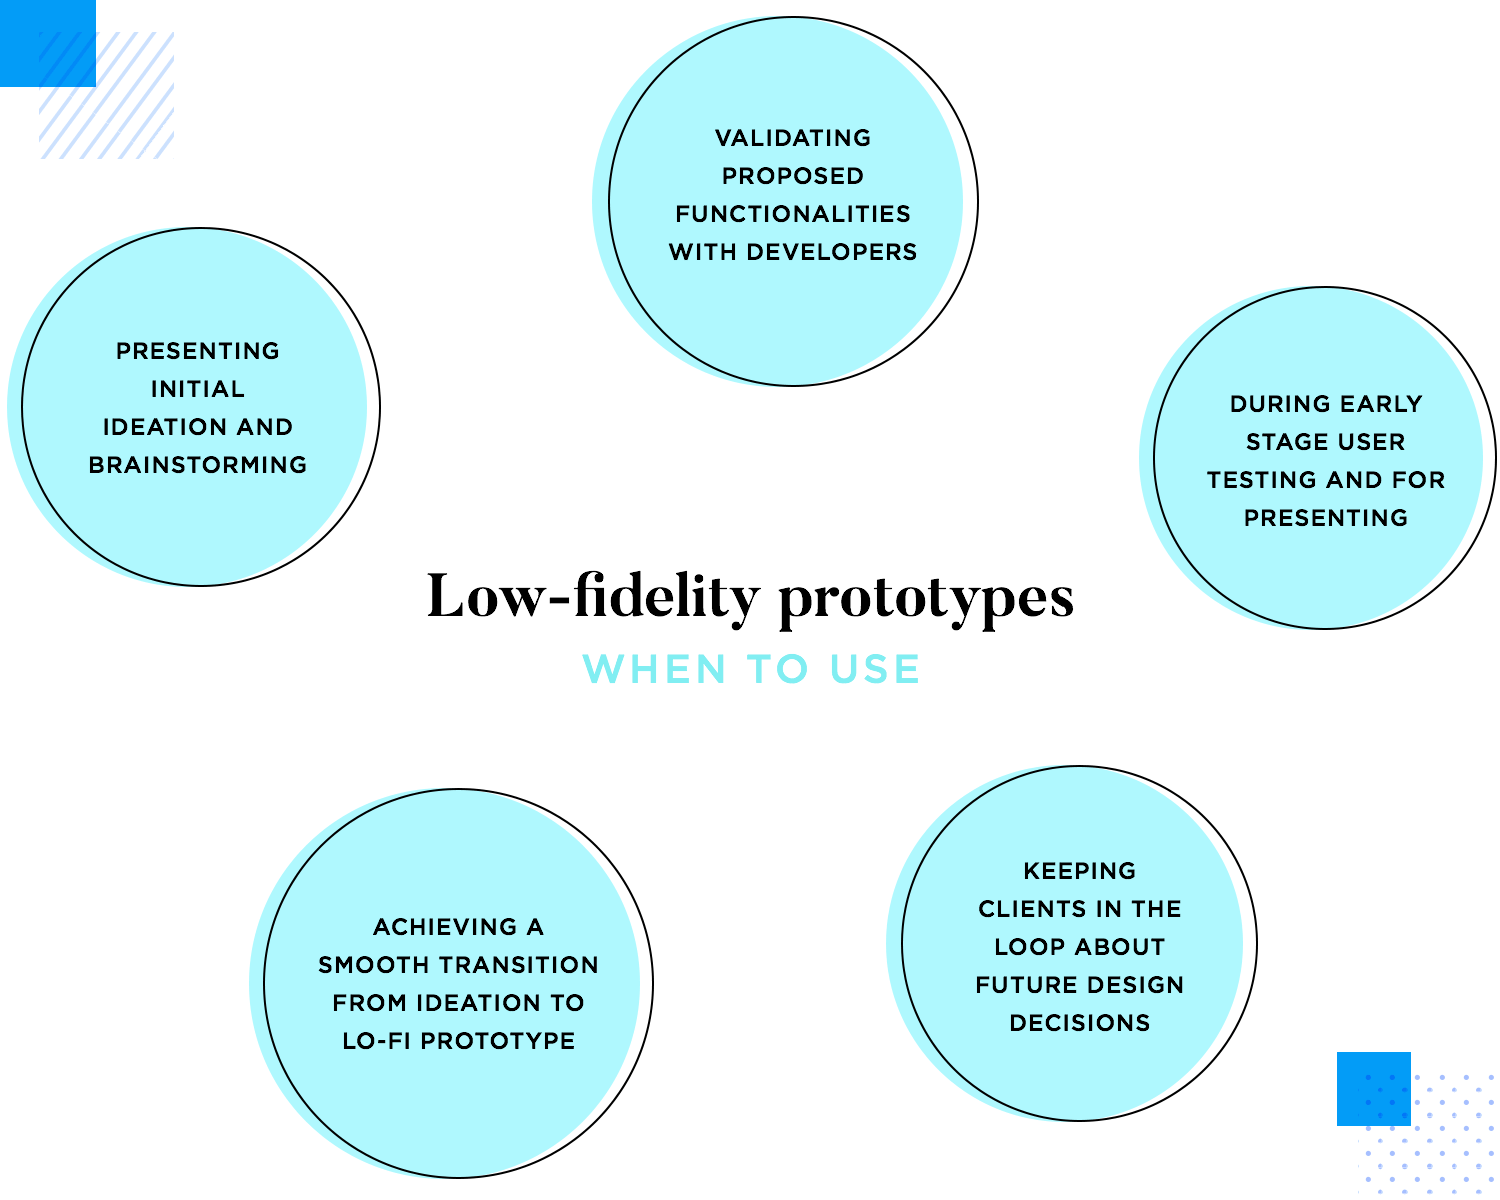 Low fidelity prototypes are useful to brainstorm design ideas